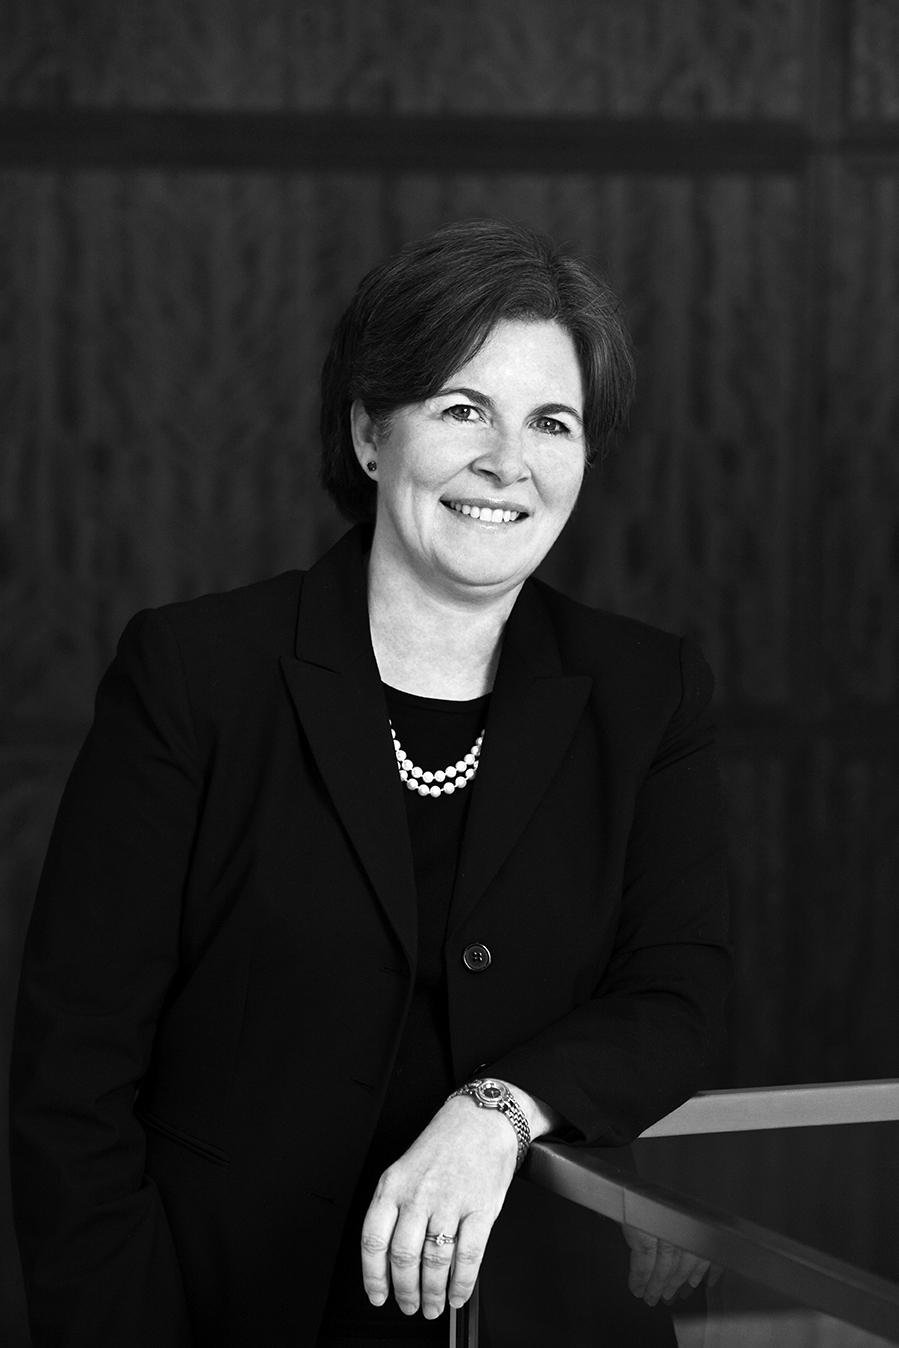 Image Description. Black and white photograph of a Caucasian woman with short brown hair standing in an office, smiling.